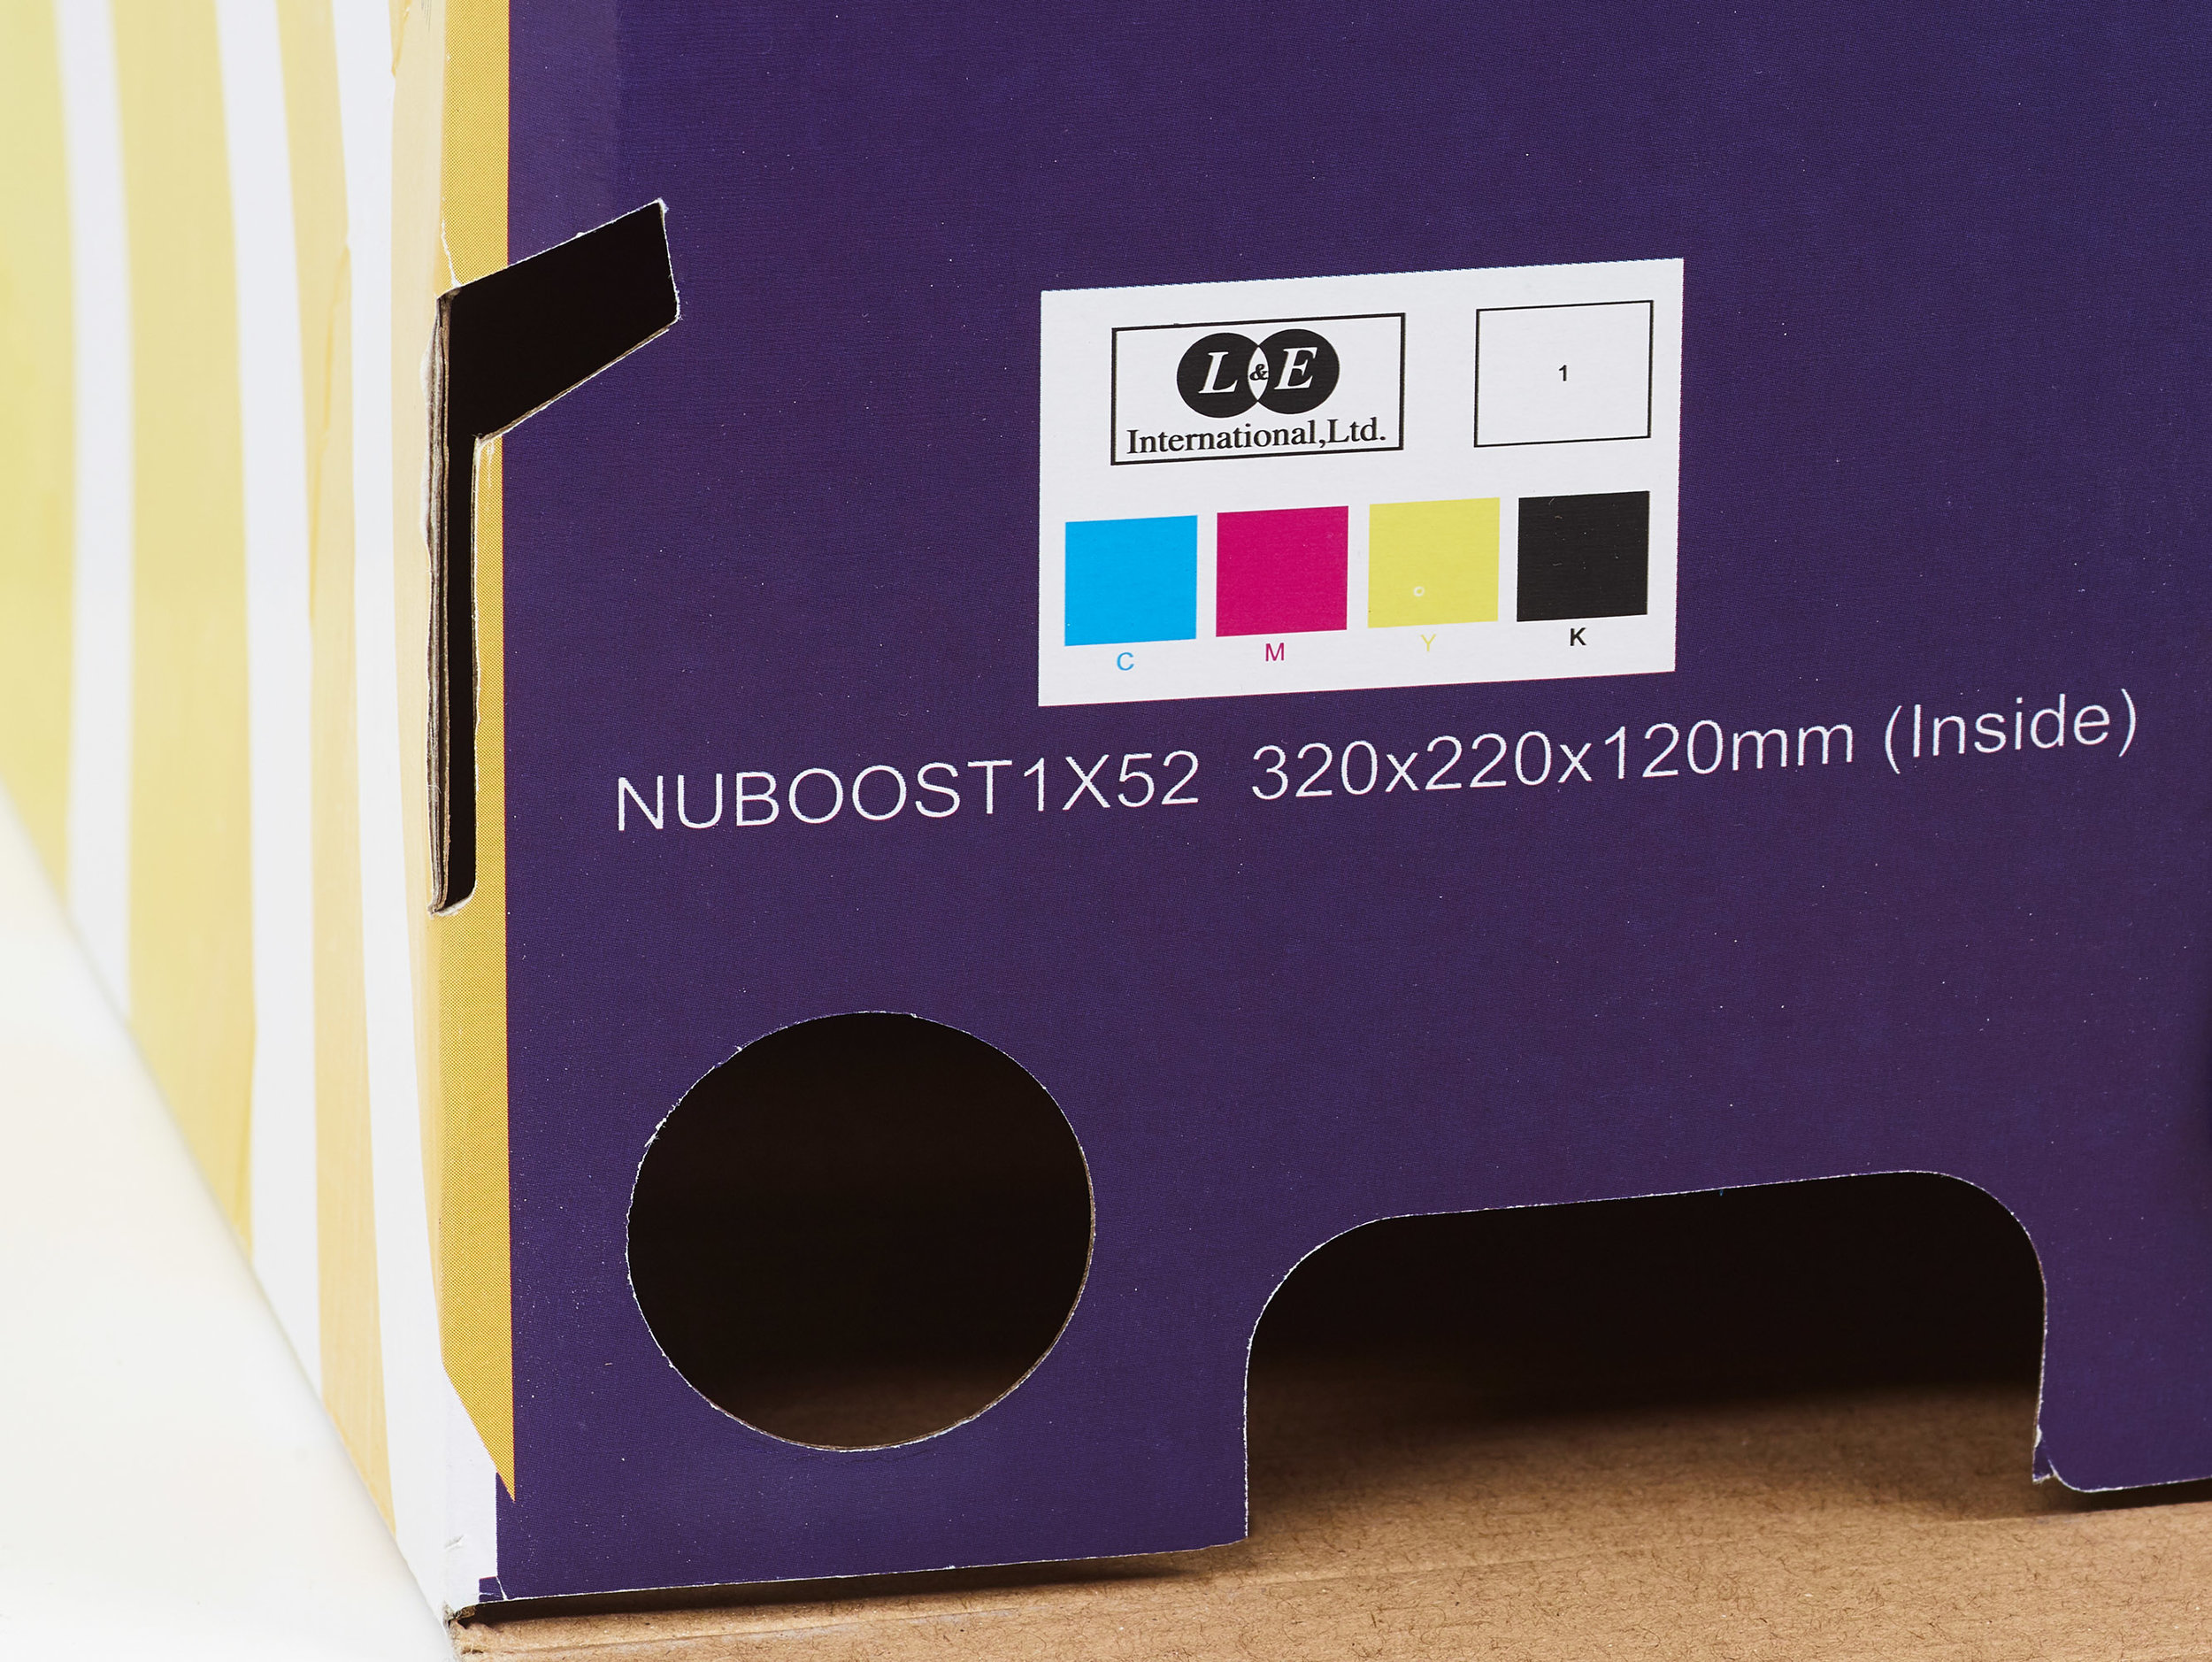 Some styles have their size printed on the side of the box tucked underneath the outer side wall.